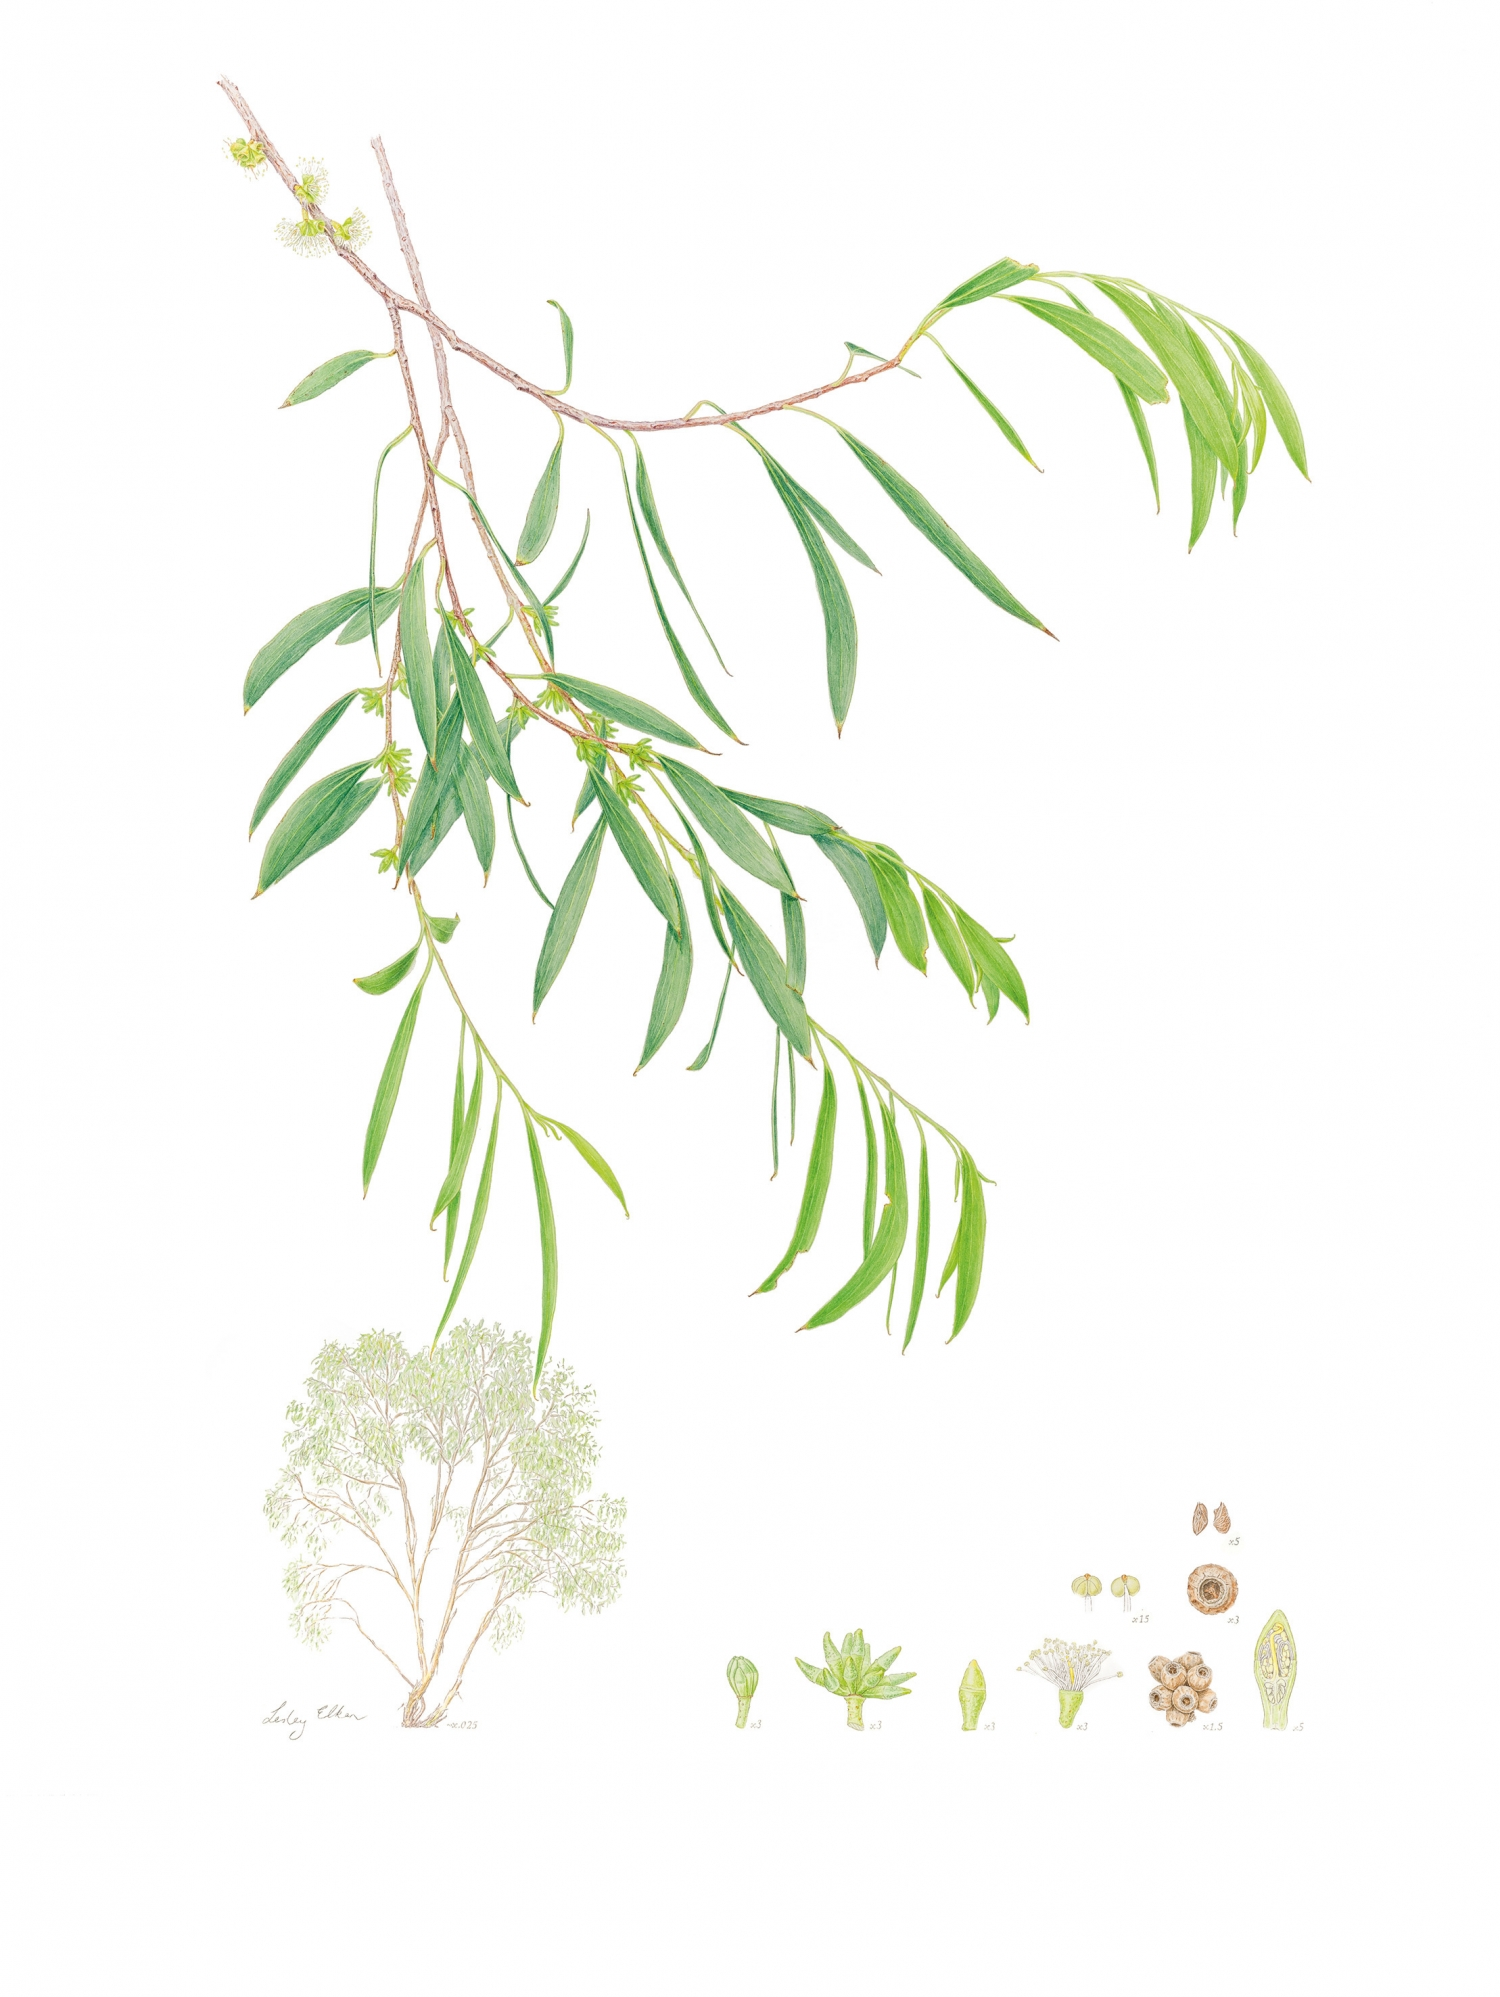 Botanical painting of Eucalyptus copulans by Lesley Elkan.